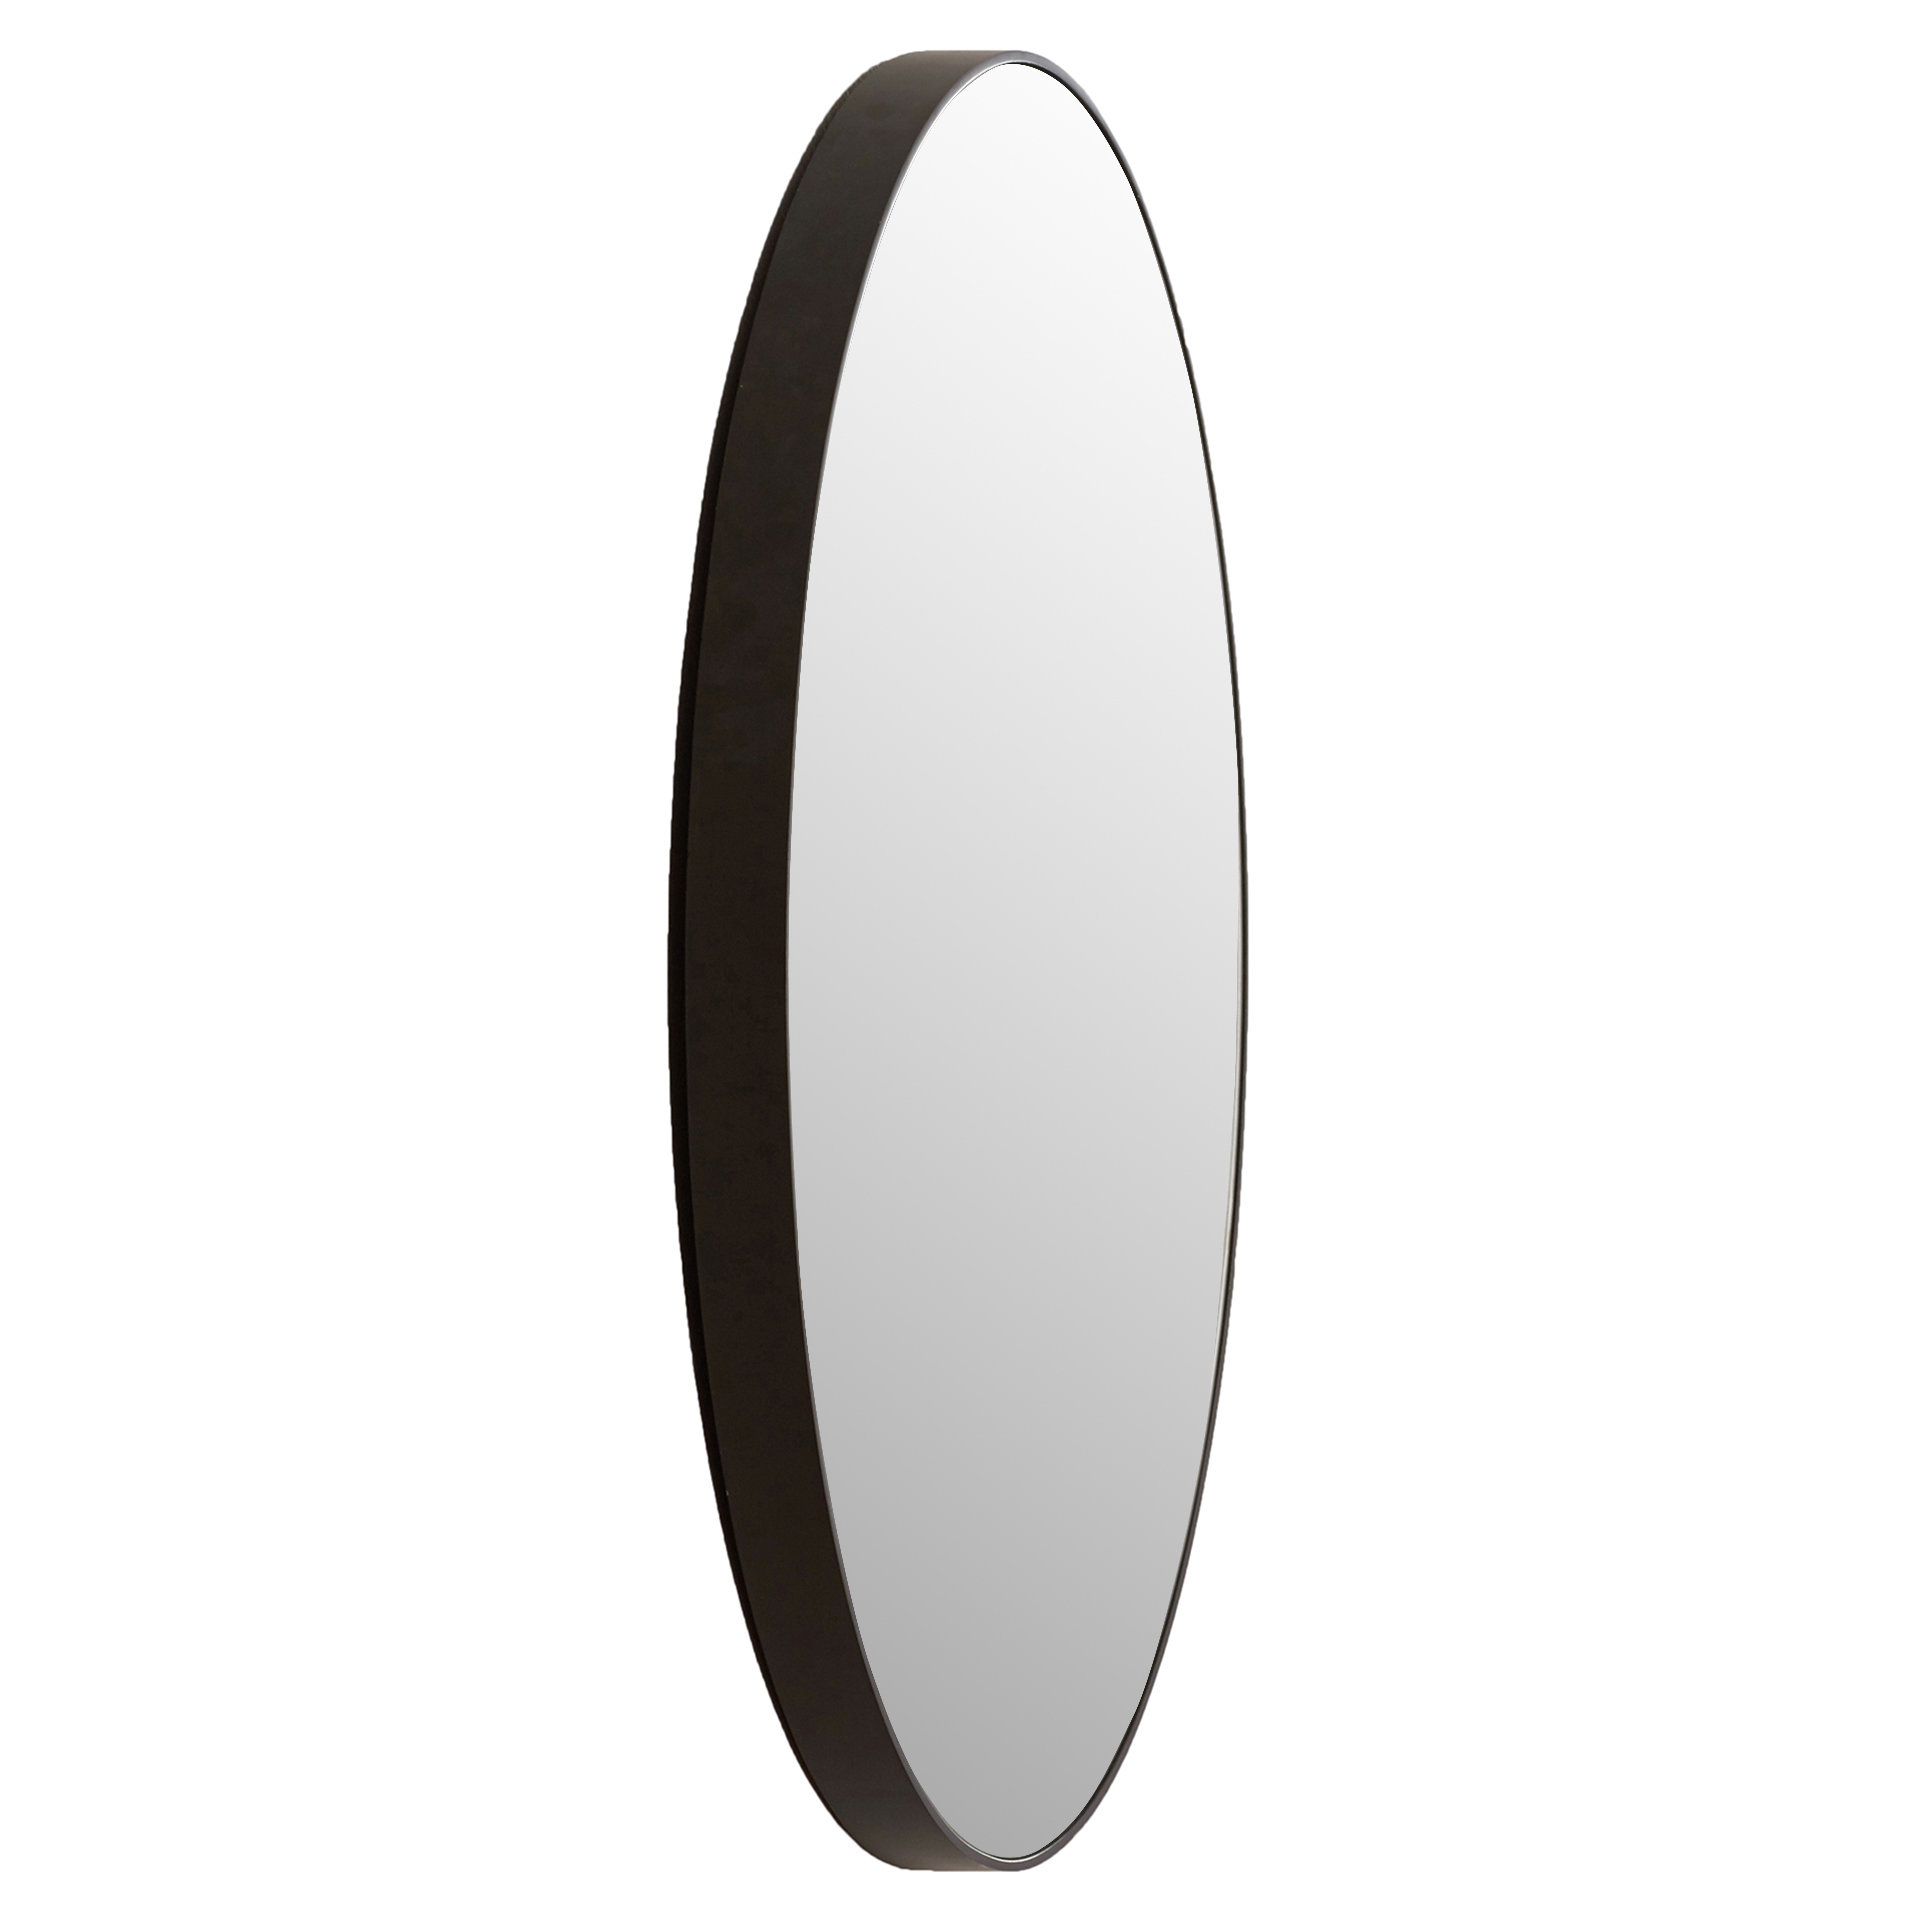 Farmhouse & Rustic Wade Logan Wall & Accent Mirrors | Birch Lane Within Northend Wall Mirrors (View 9 of 20)